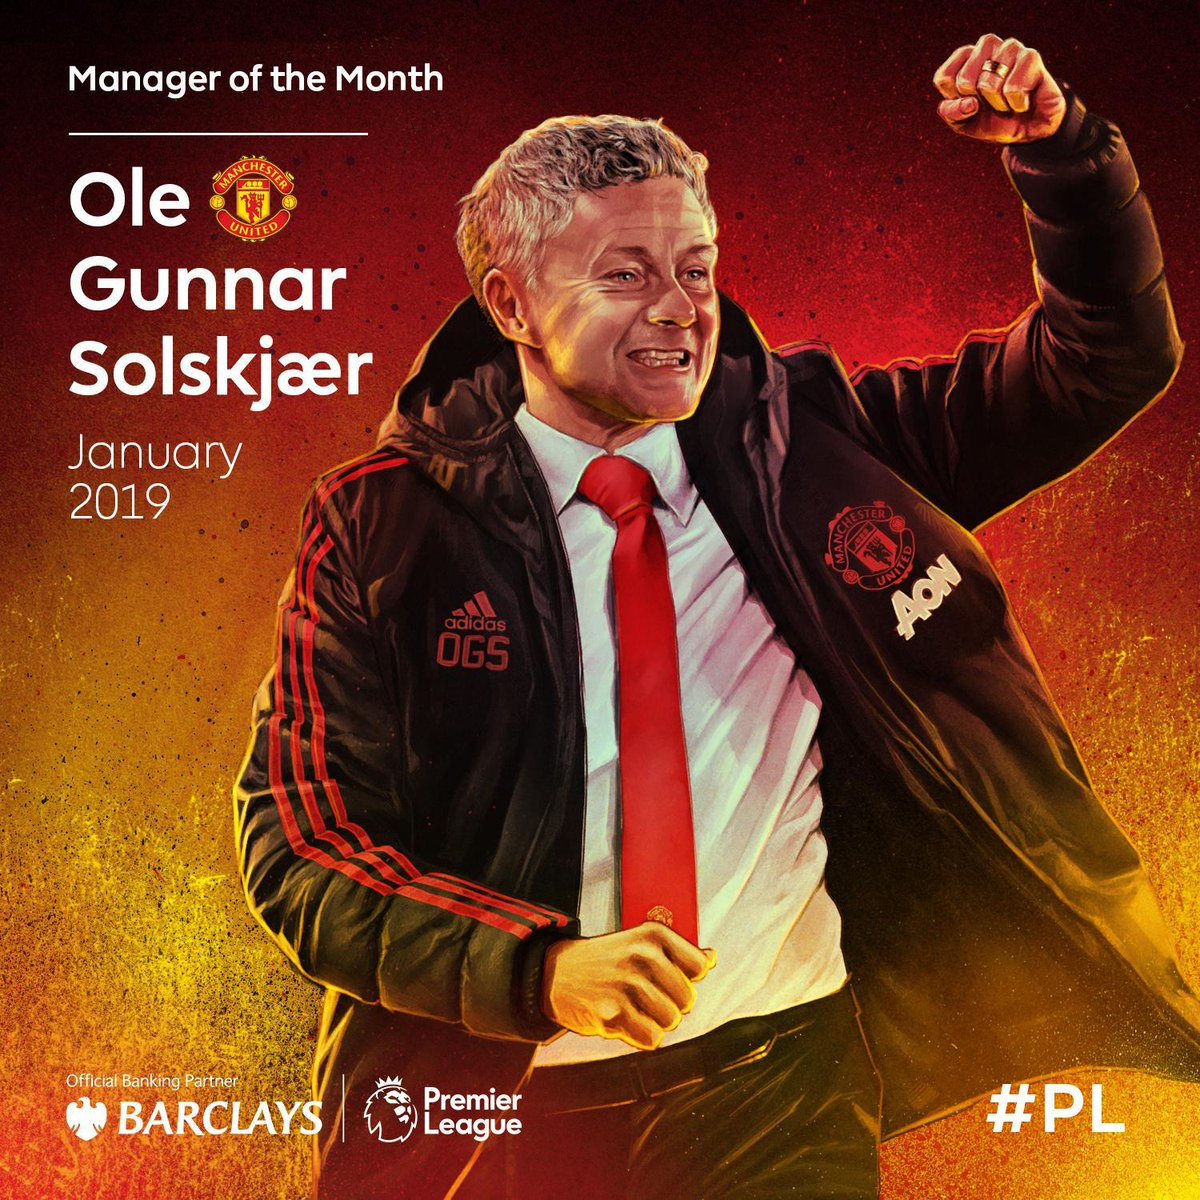 Another W for Ole Gunnar Solskjaer  Your @BarclaysFooty Manager of the Month for January  #PLAwards